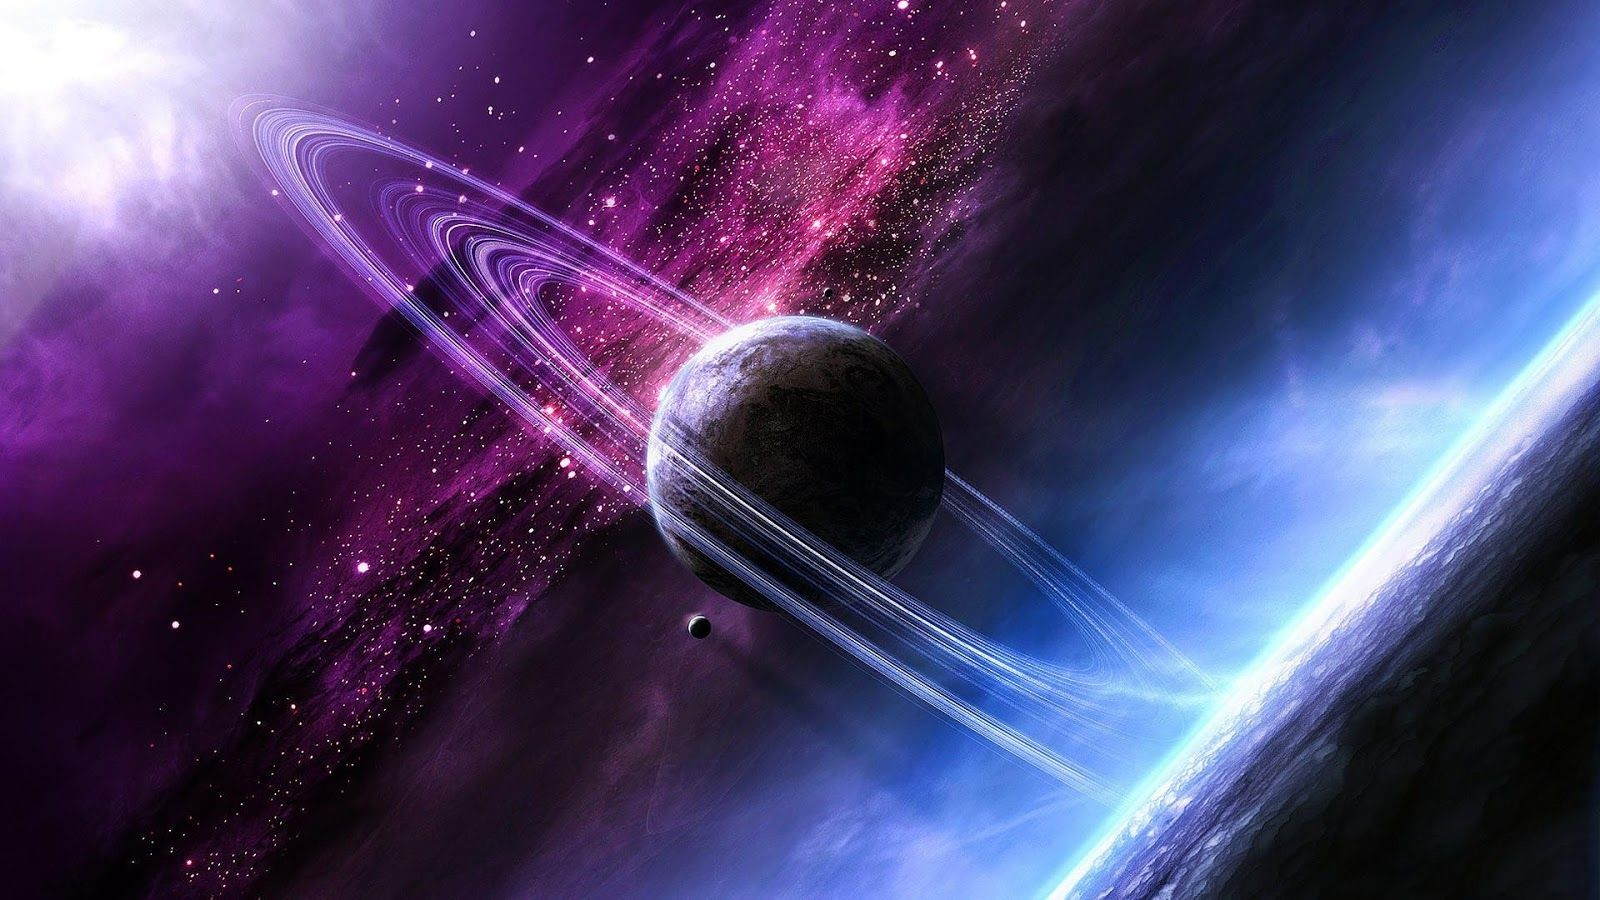 Miss my college days pictures collection free download mobogenie - Beautiful Space Planet Wallpaper